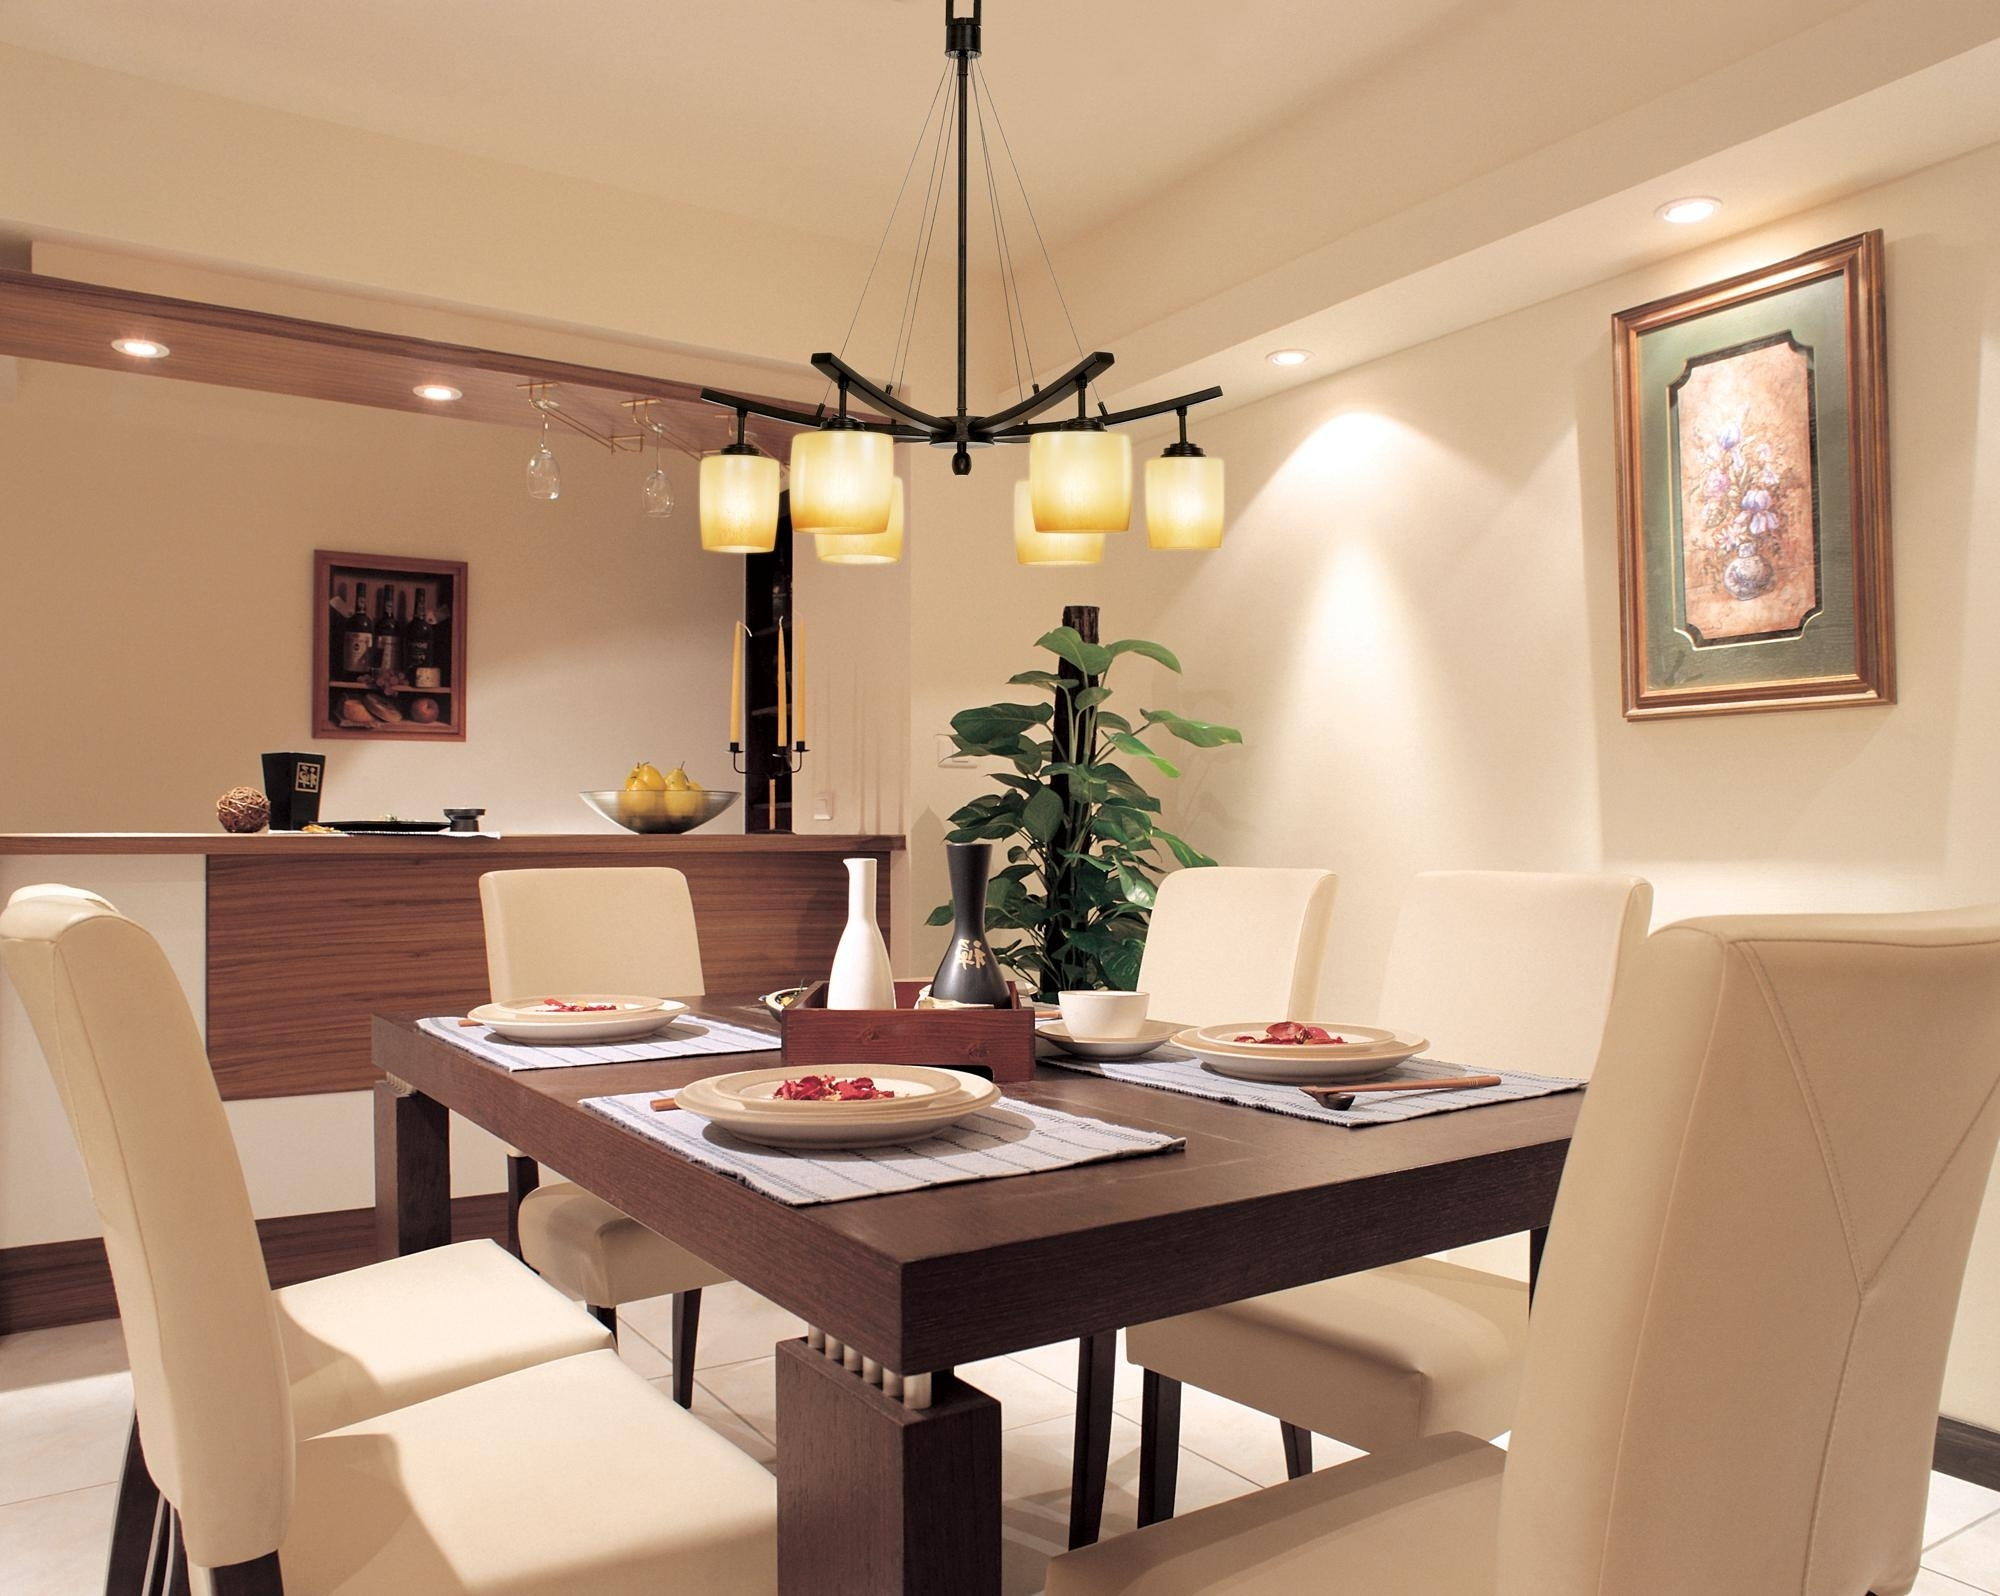 Most Popular Lighting For Dining Tables With Regard To Dining Room Living Room And Dining Room Lighting Dining Table (View 5 of 25)